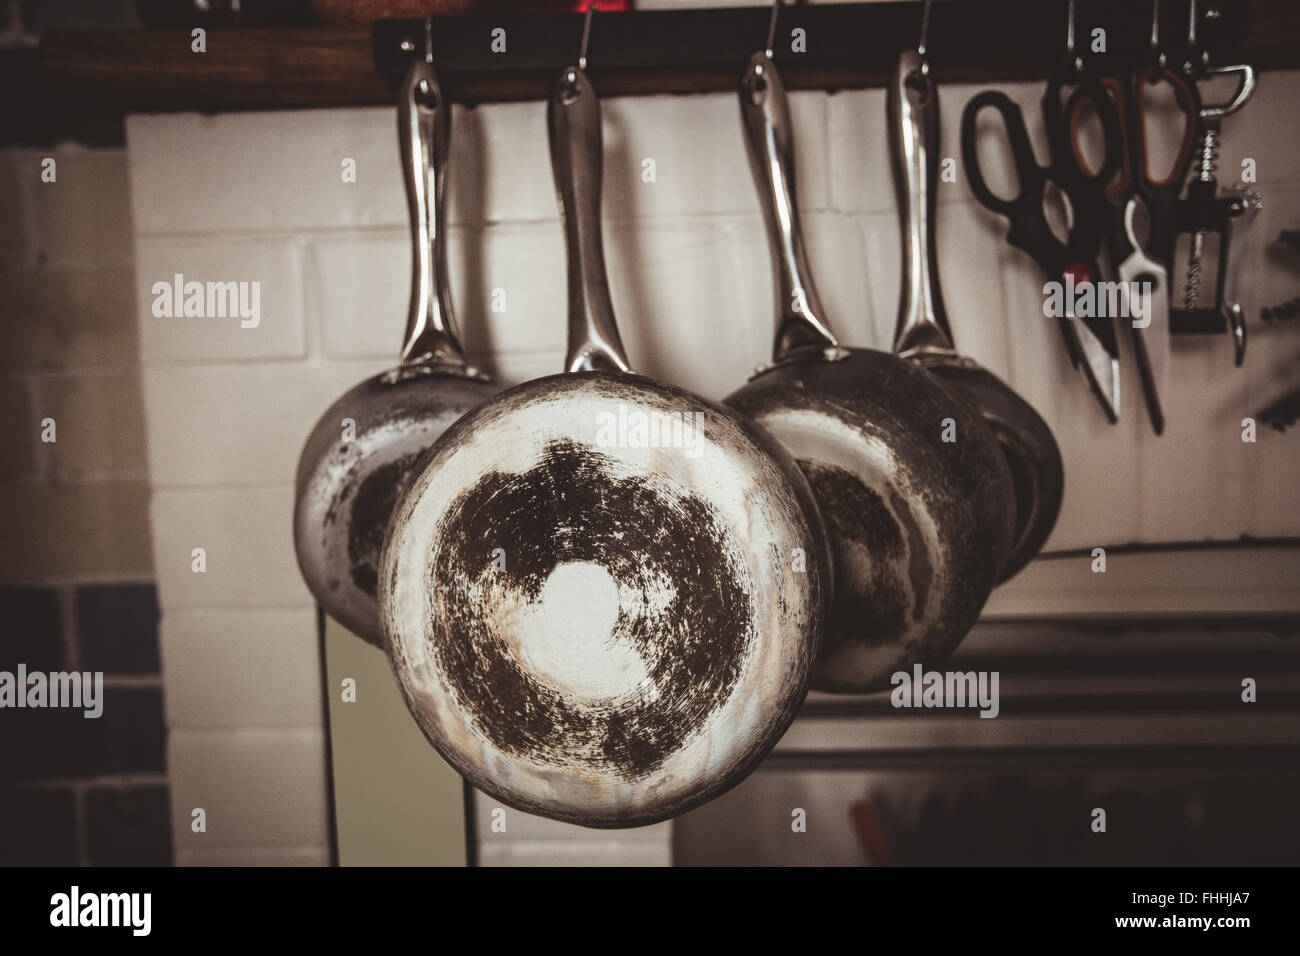 Pots and pans hooked in the kitchen - Stock Image